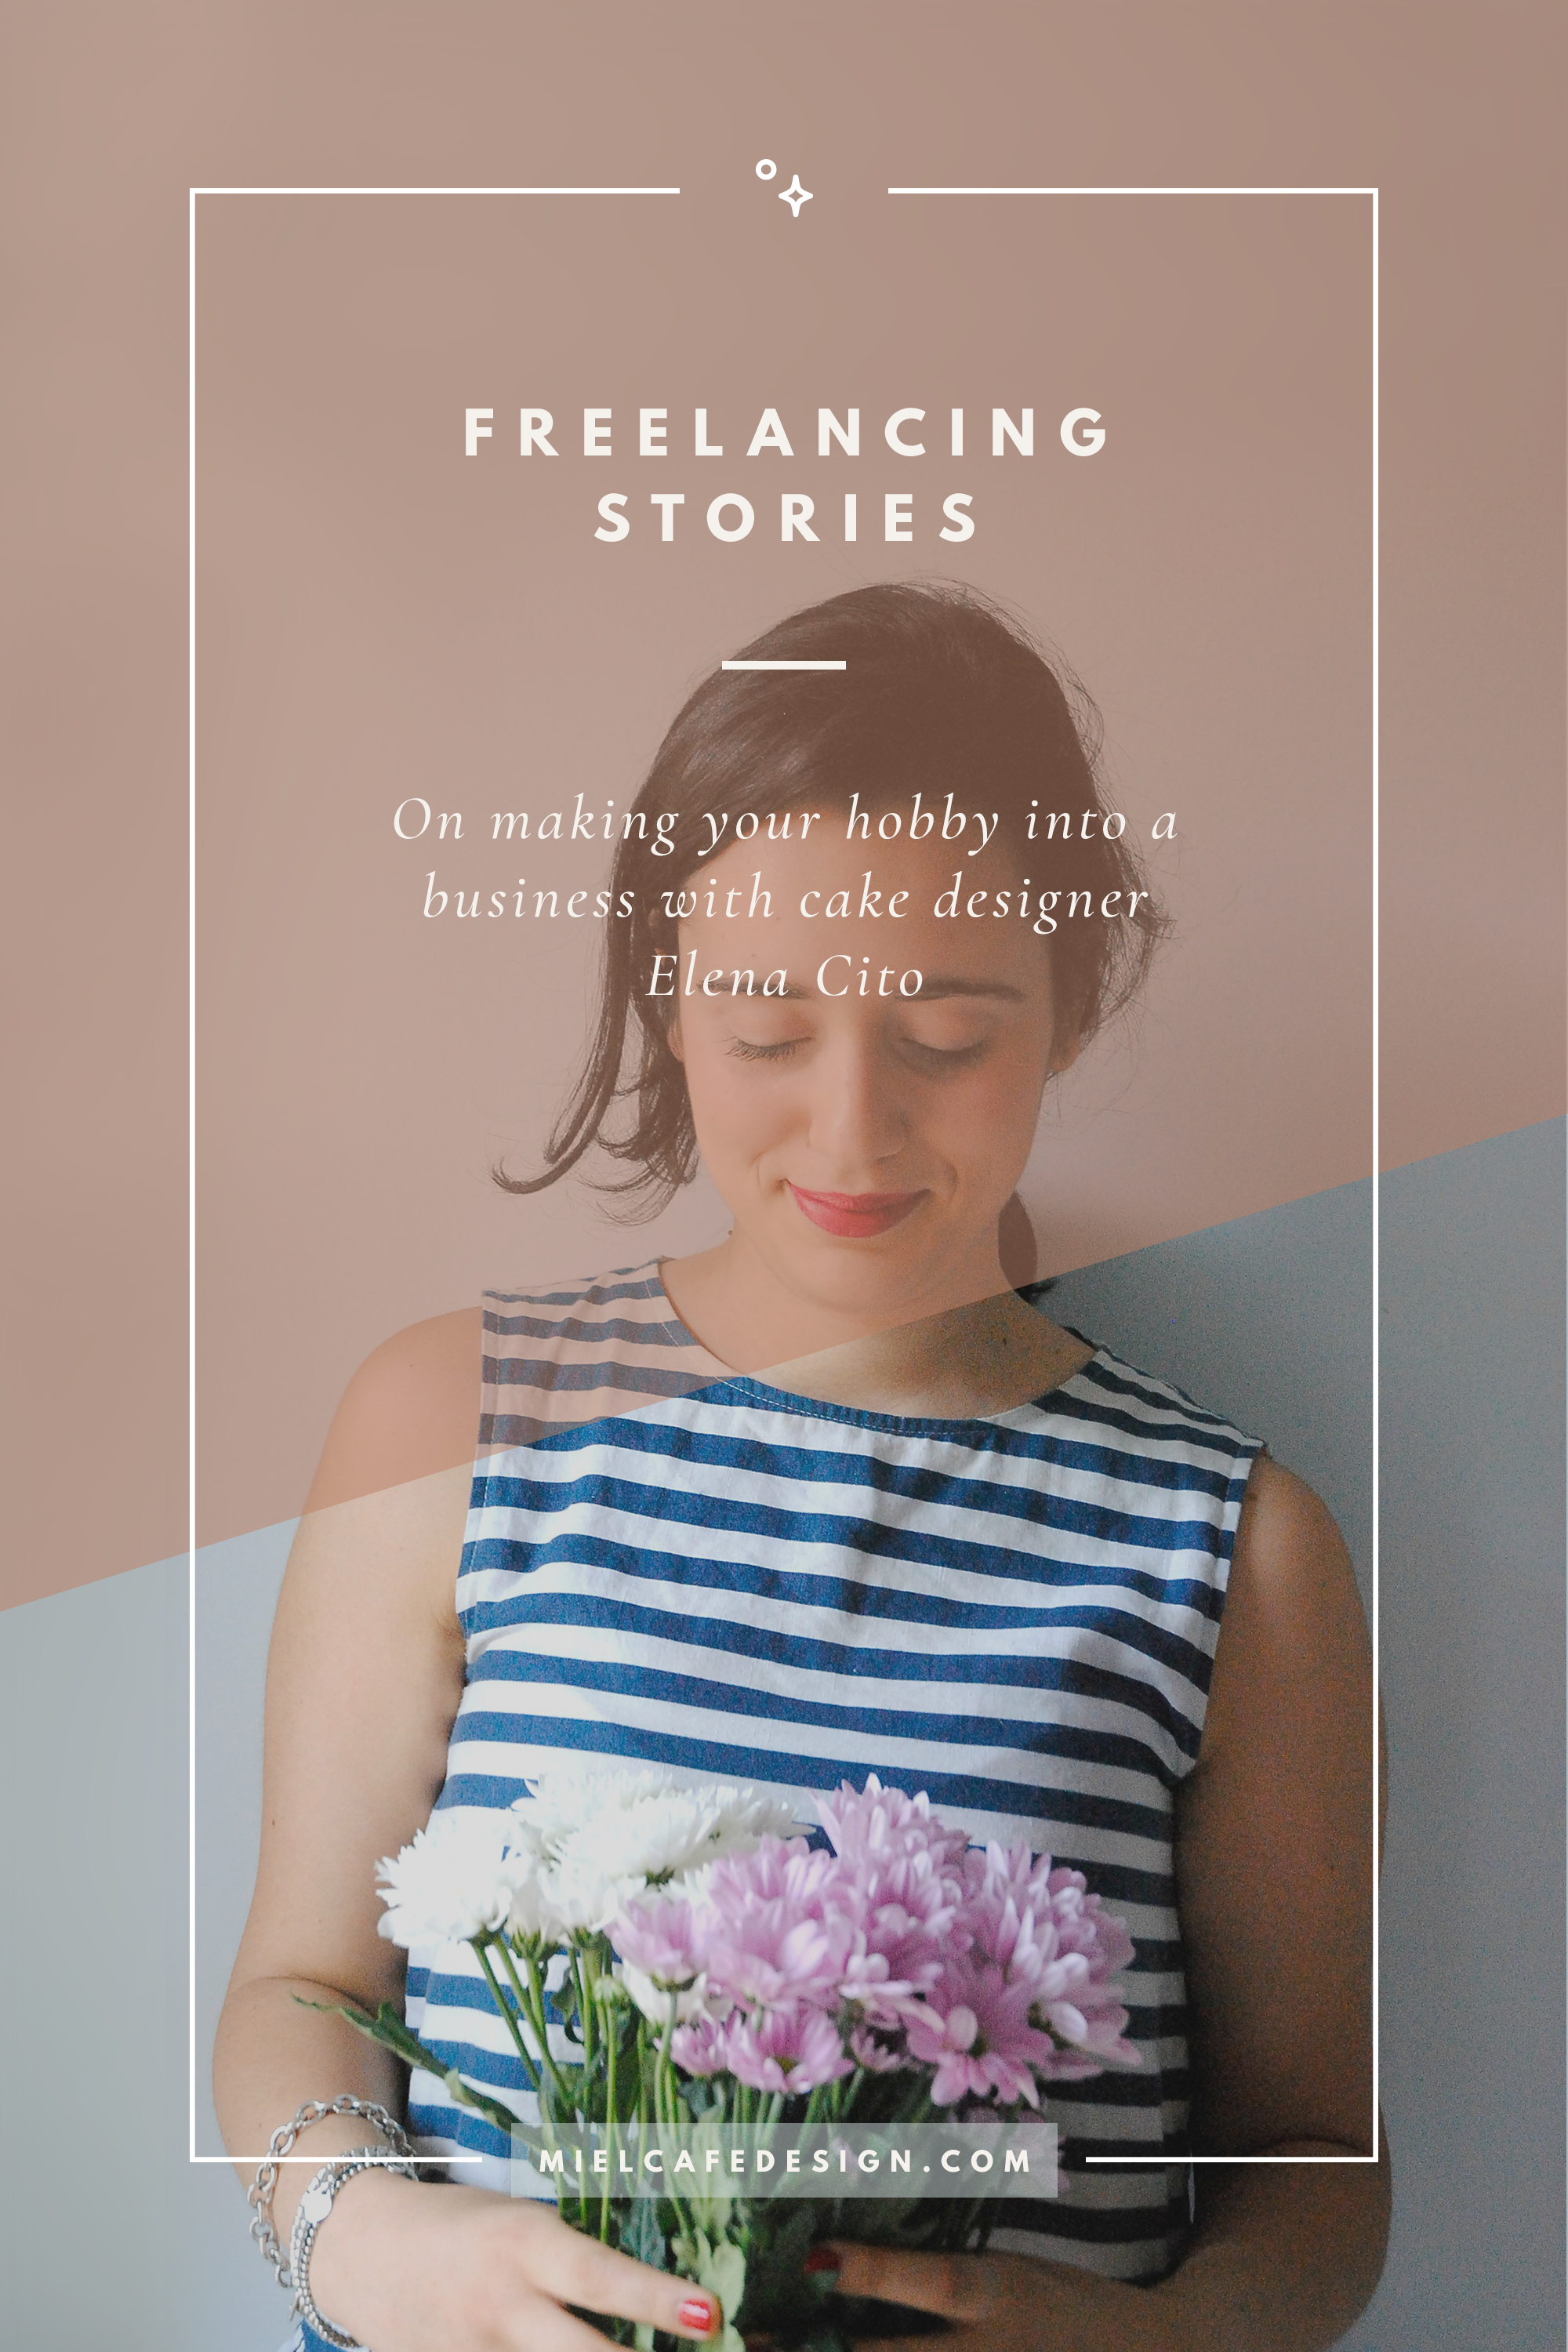 Freelancing Stories: Turn Your Hobby Into A Business, With Cake Designer Elena Cito